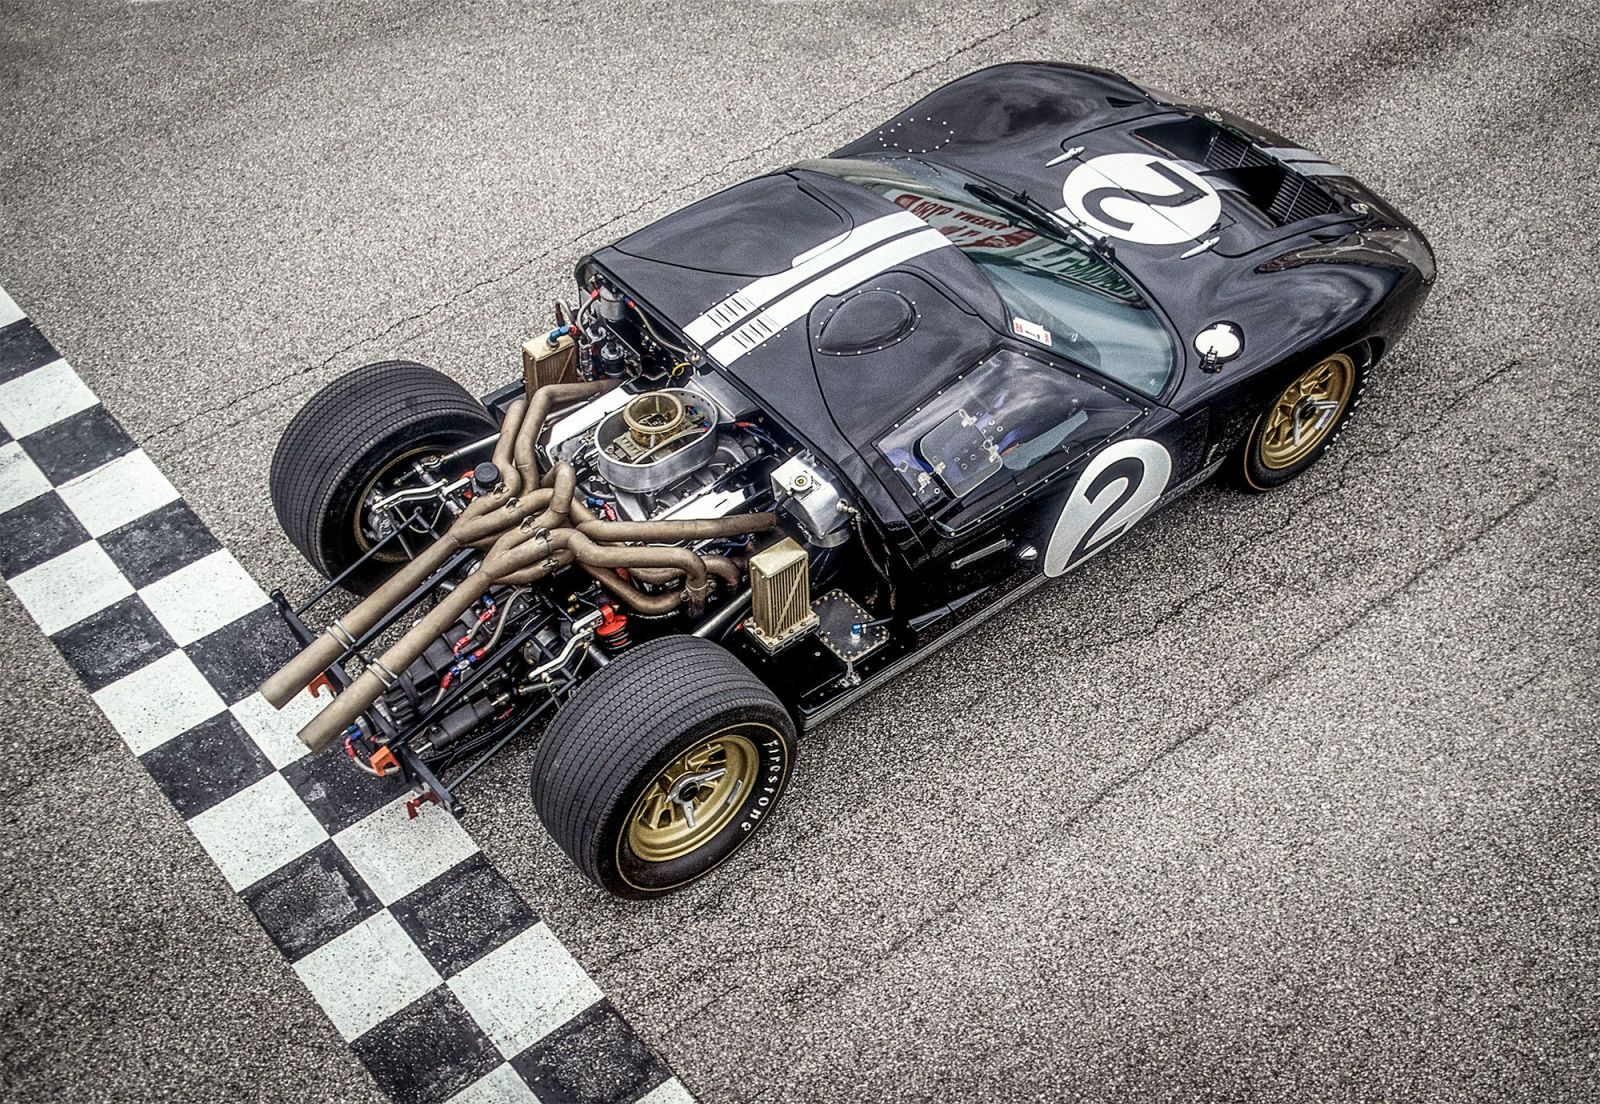 The Life And Times Of The 1966 Le Mans Winning Ford Gt40 Mk Ii Ford Gt40 Ford Classic Cars Ford Gt